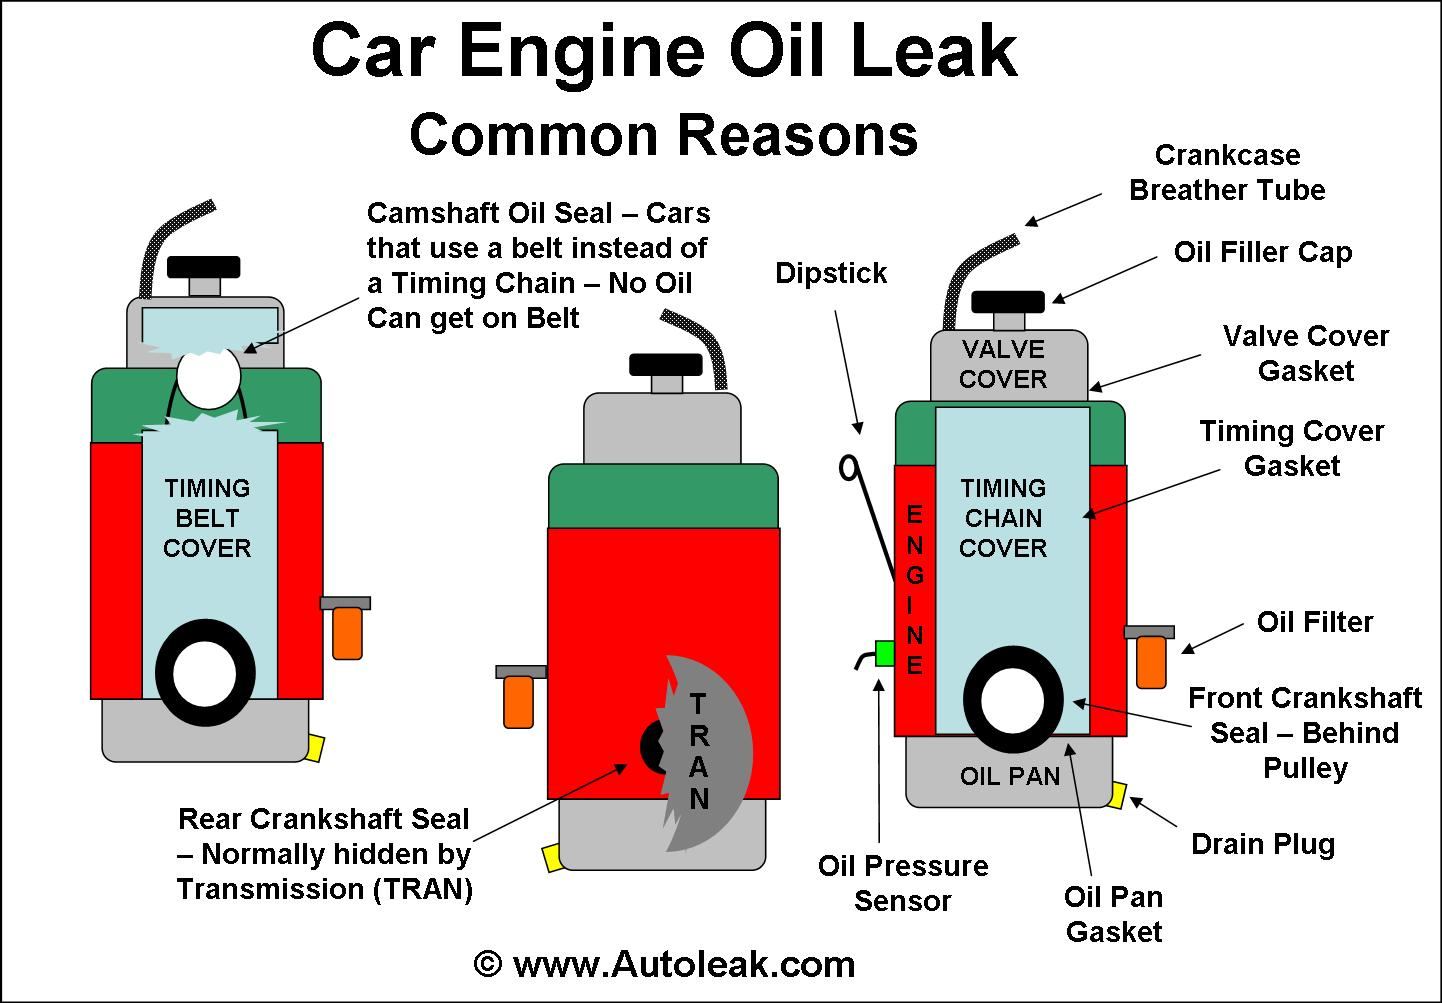 Engine Oil Leak Causes, Leaking Oil